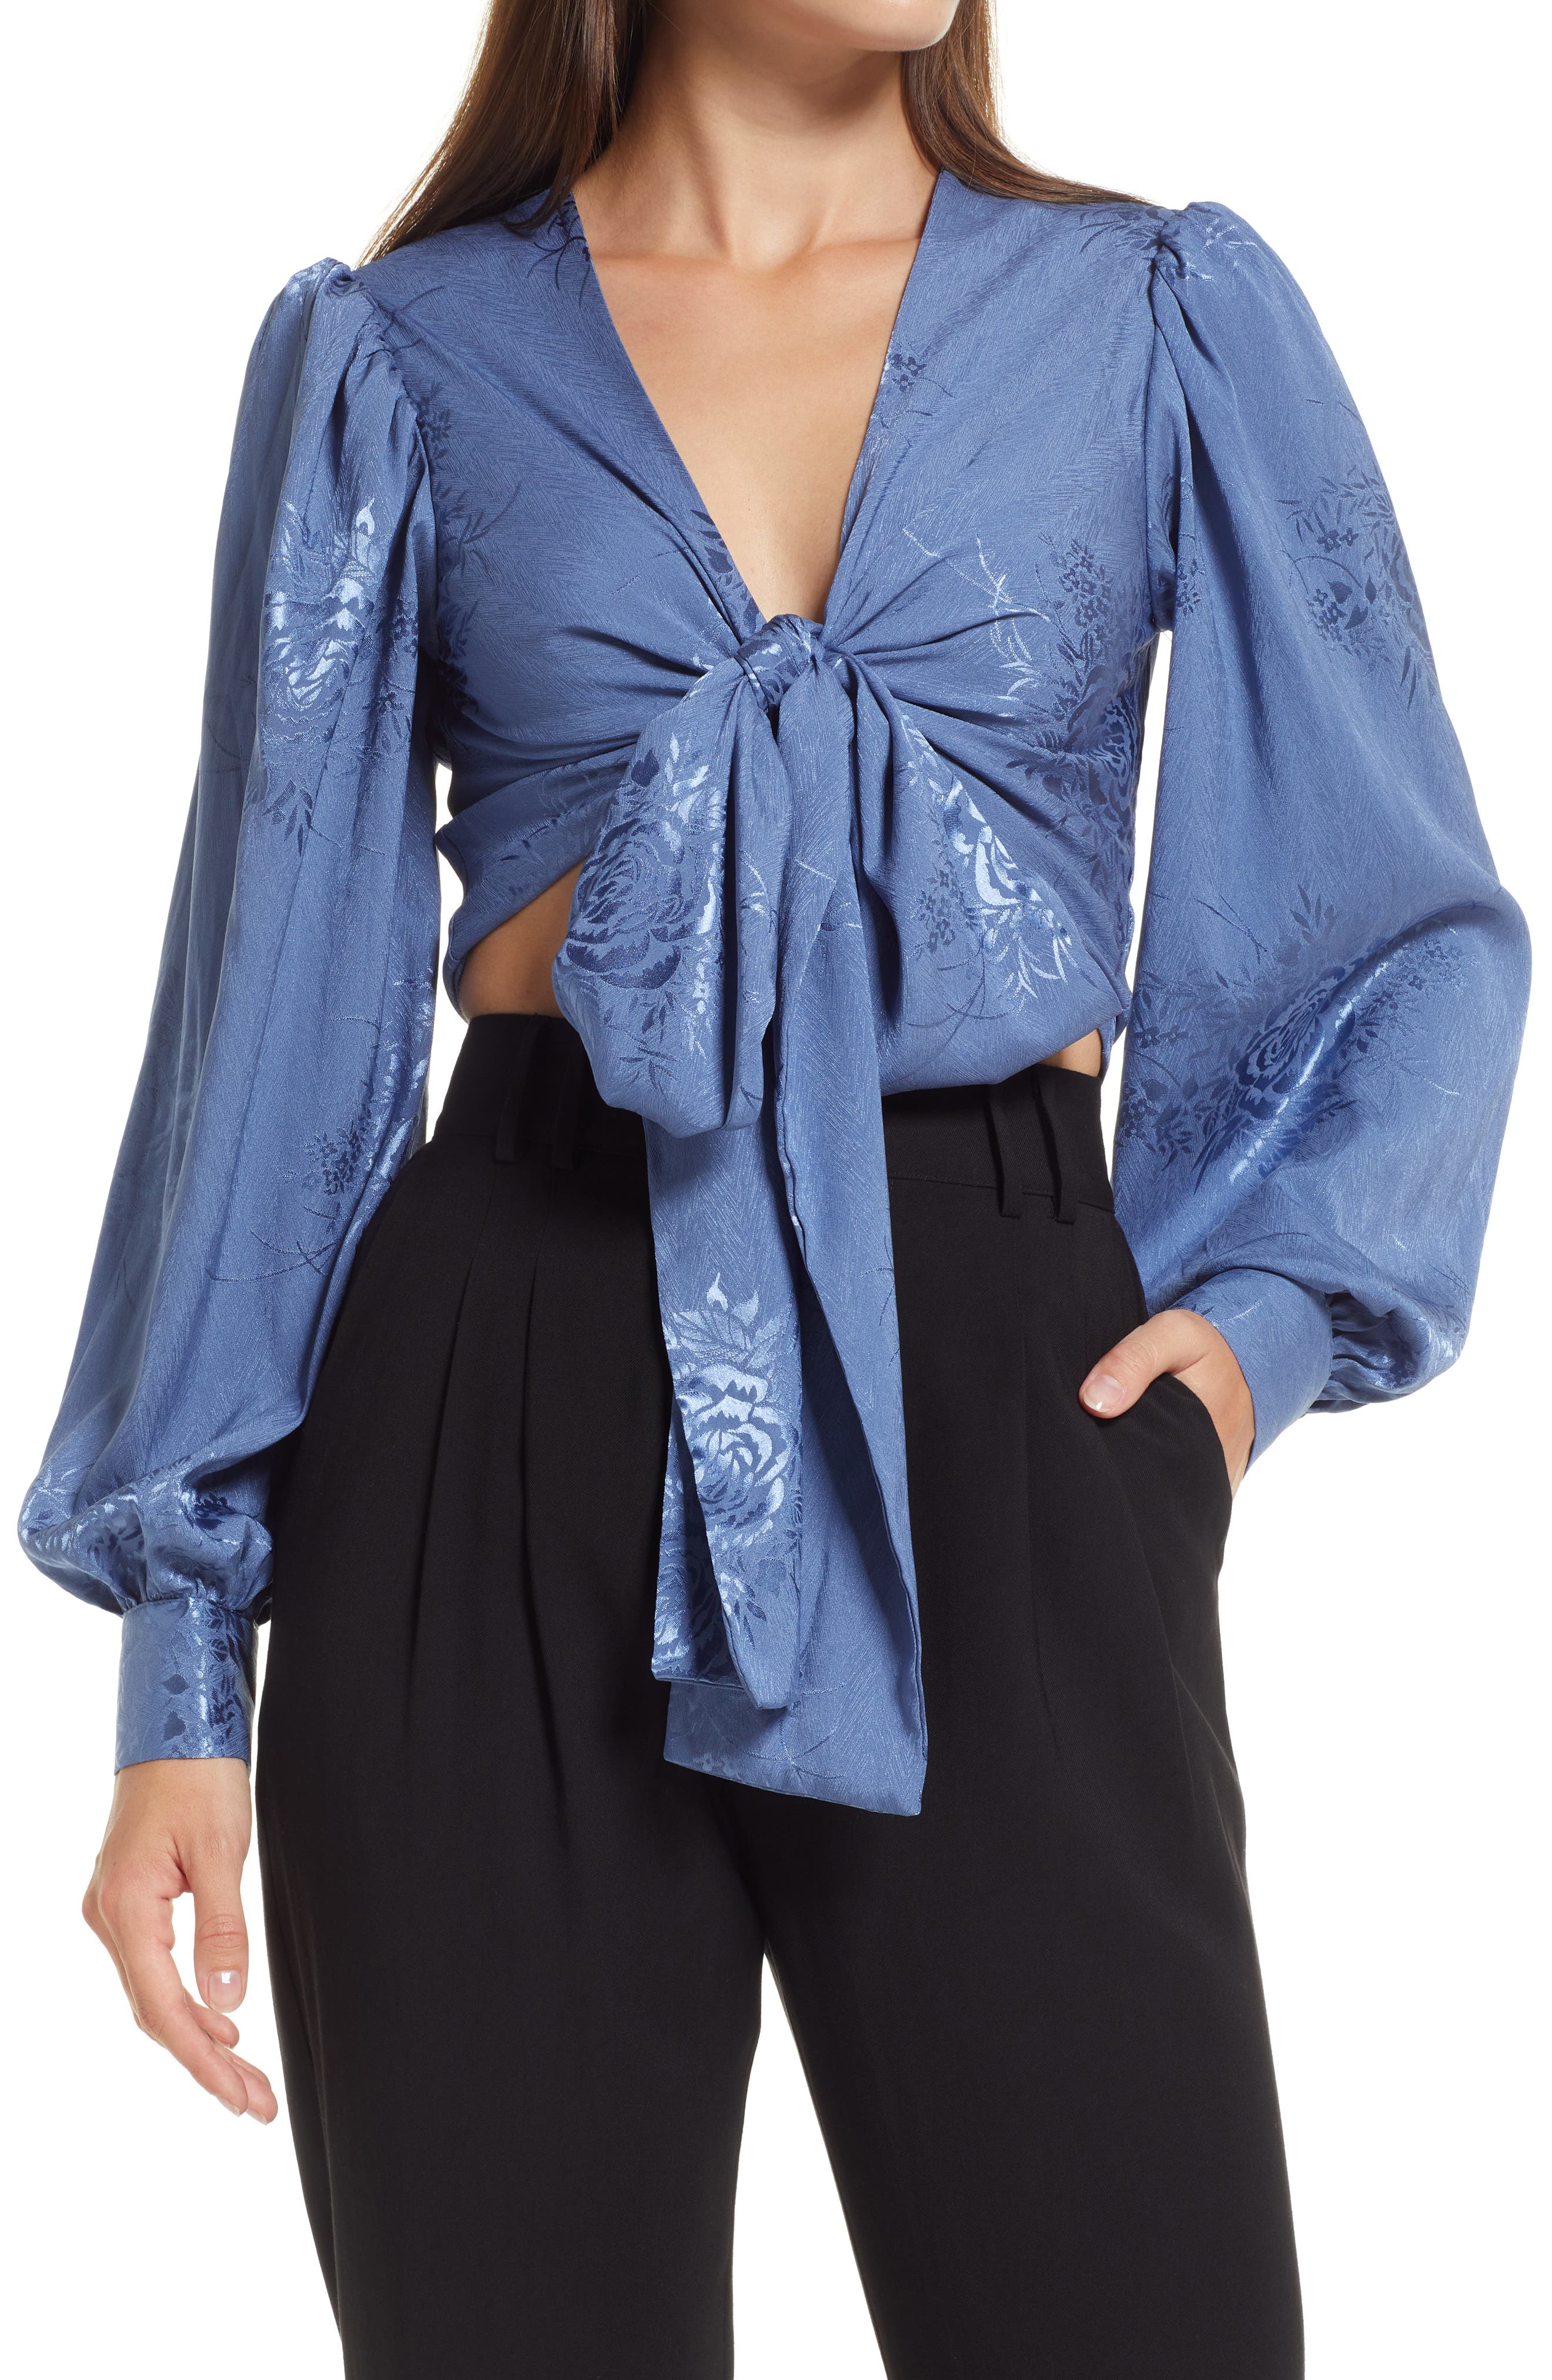 Highly Iconic Satin Jacquard Tie Front Top